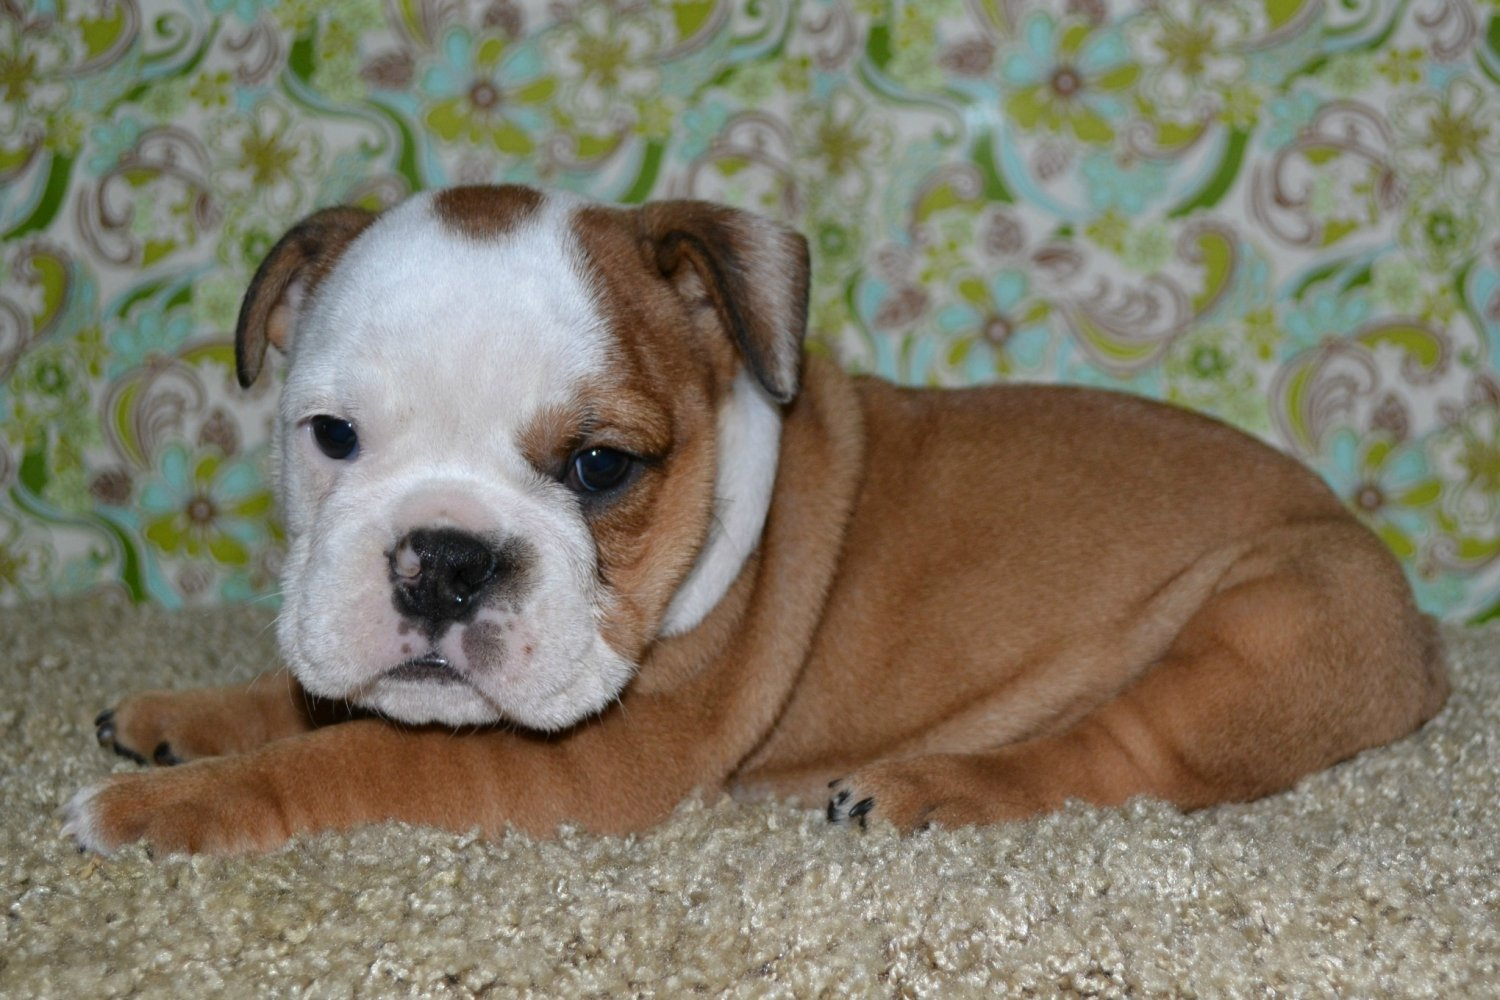 Previous American Bulldogs Puppies For